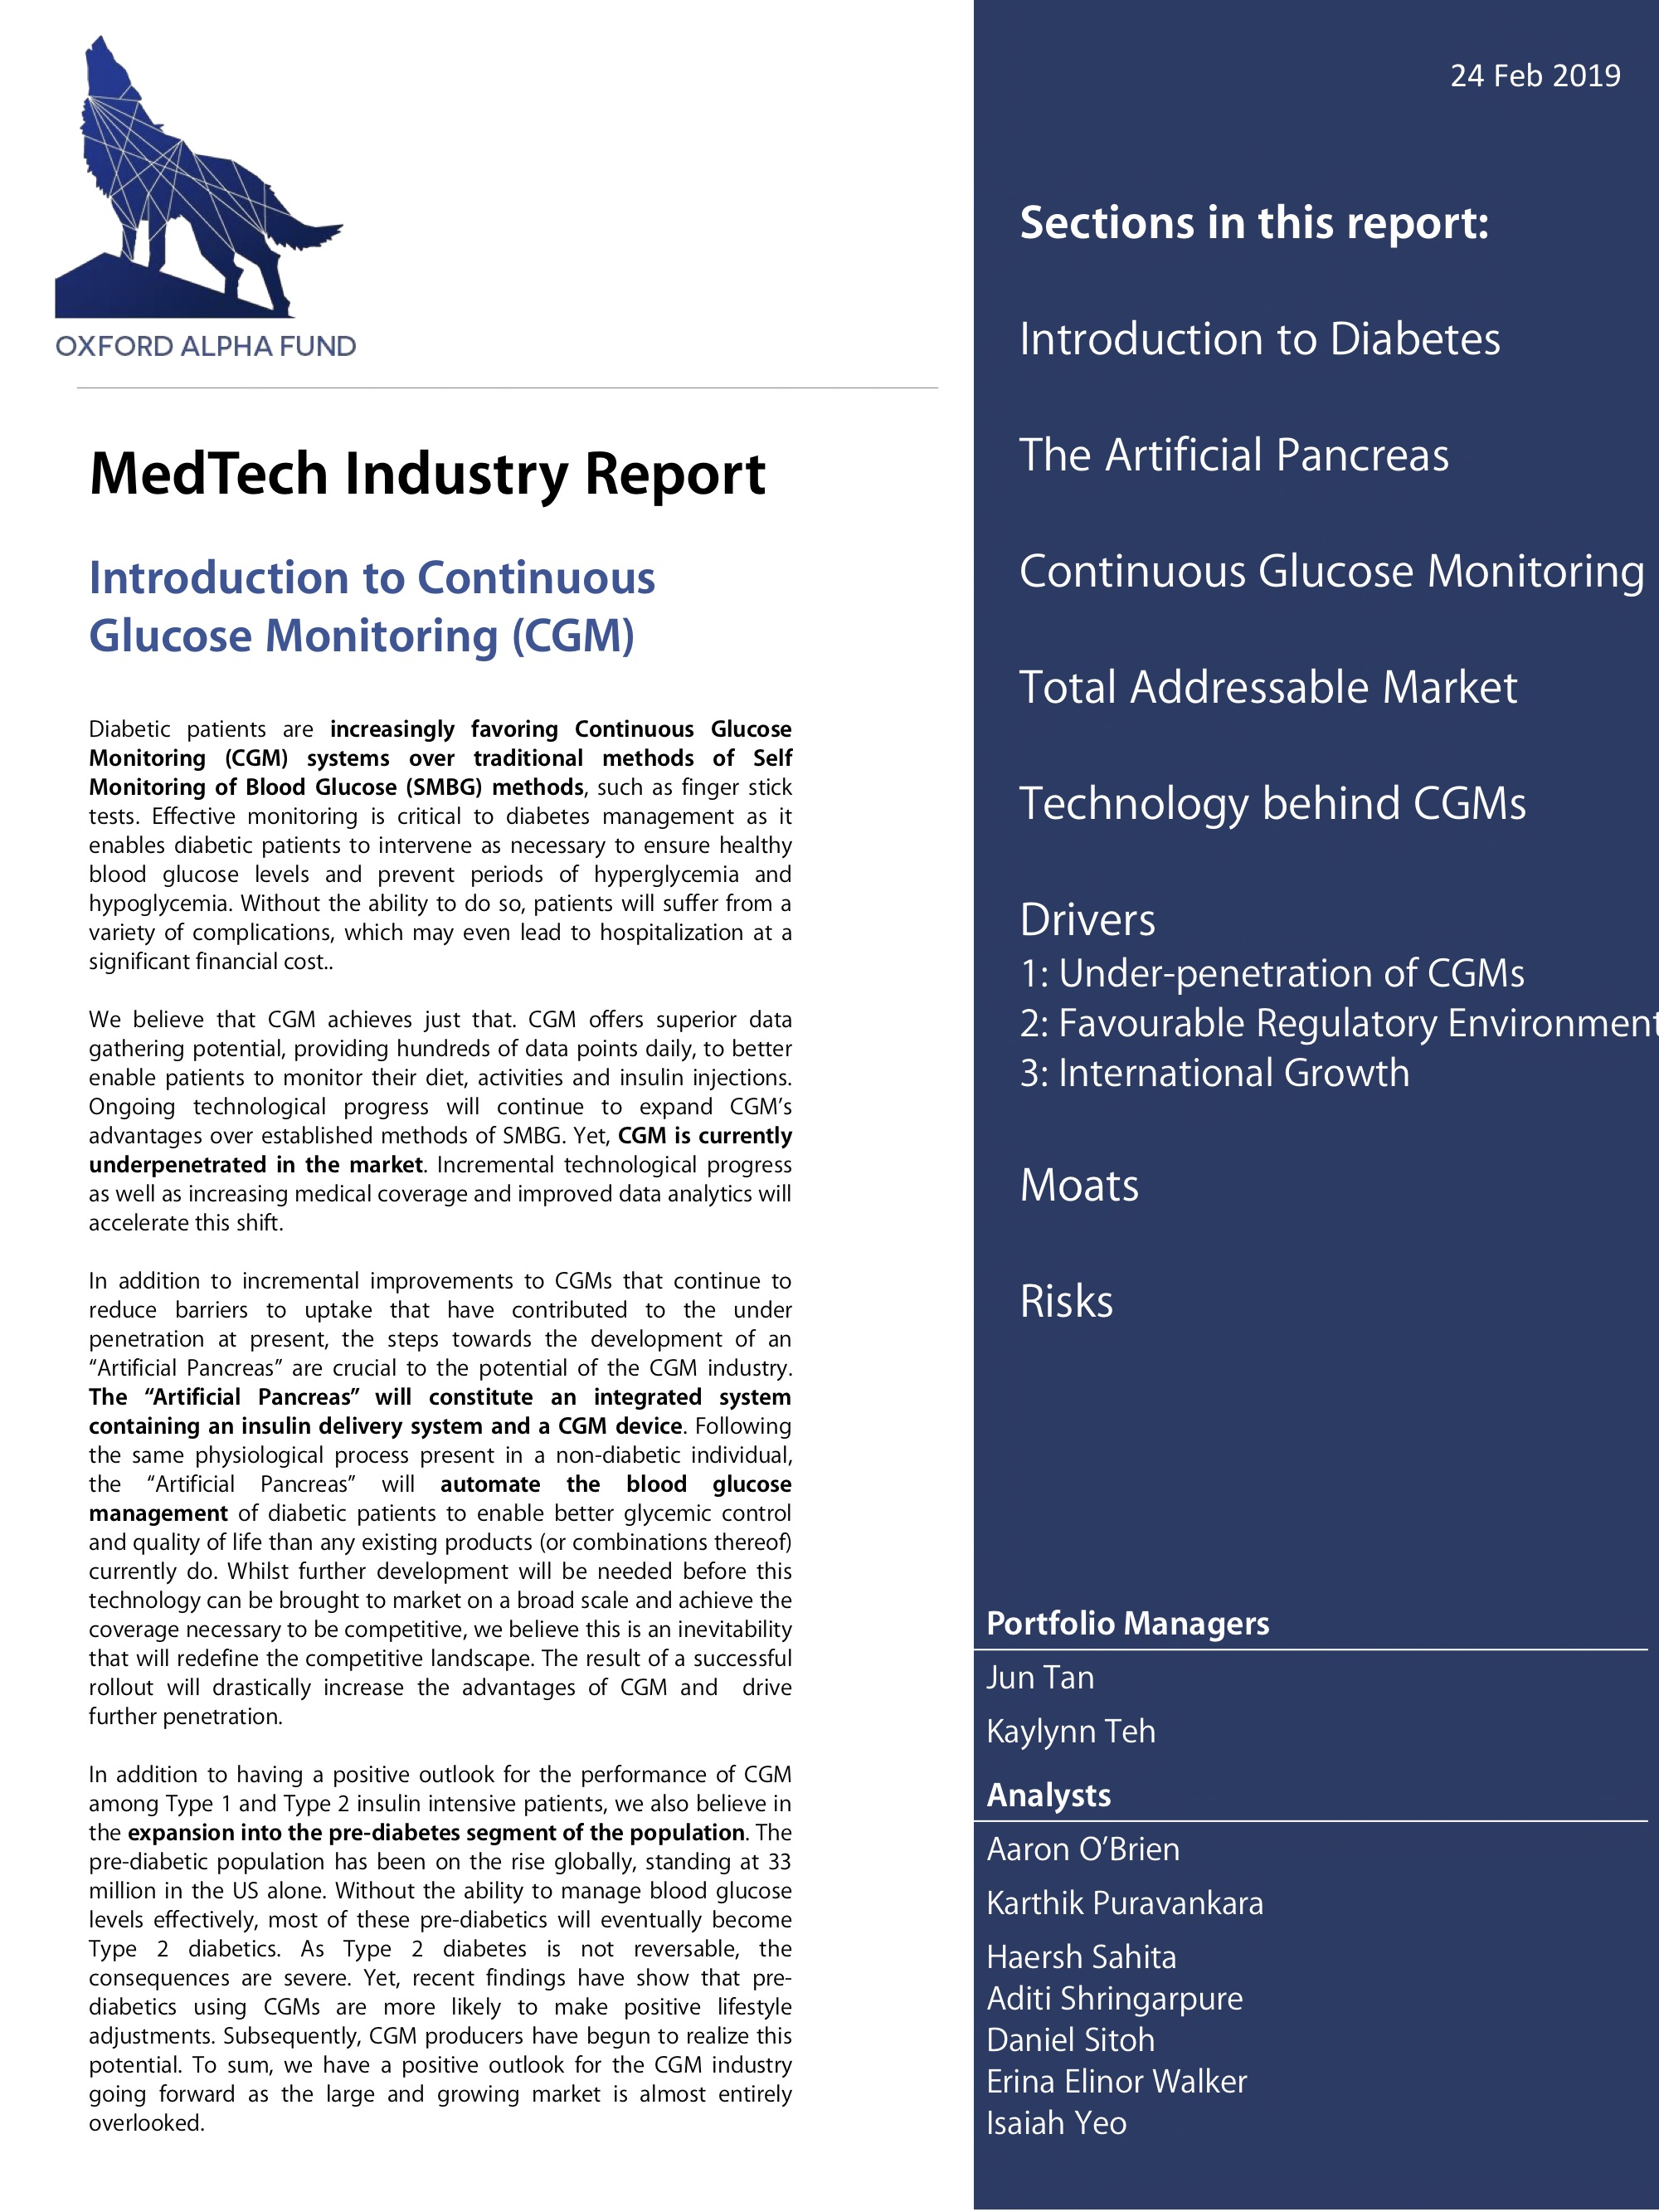 MedTech Industry Report.jpg